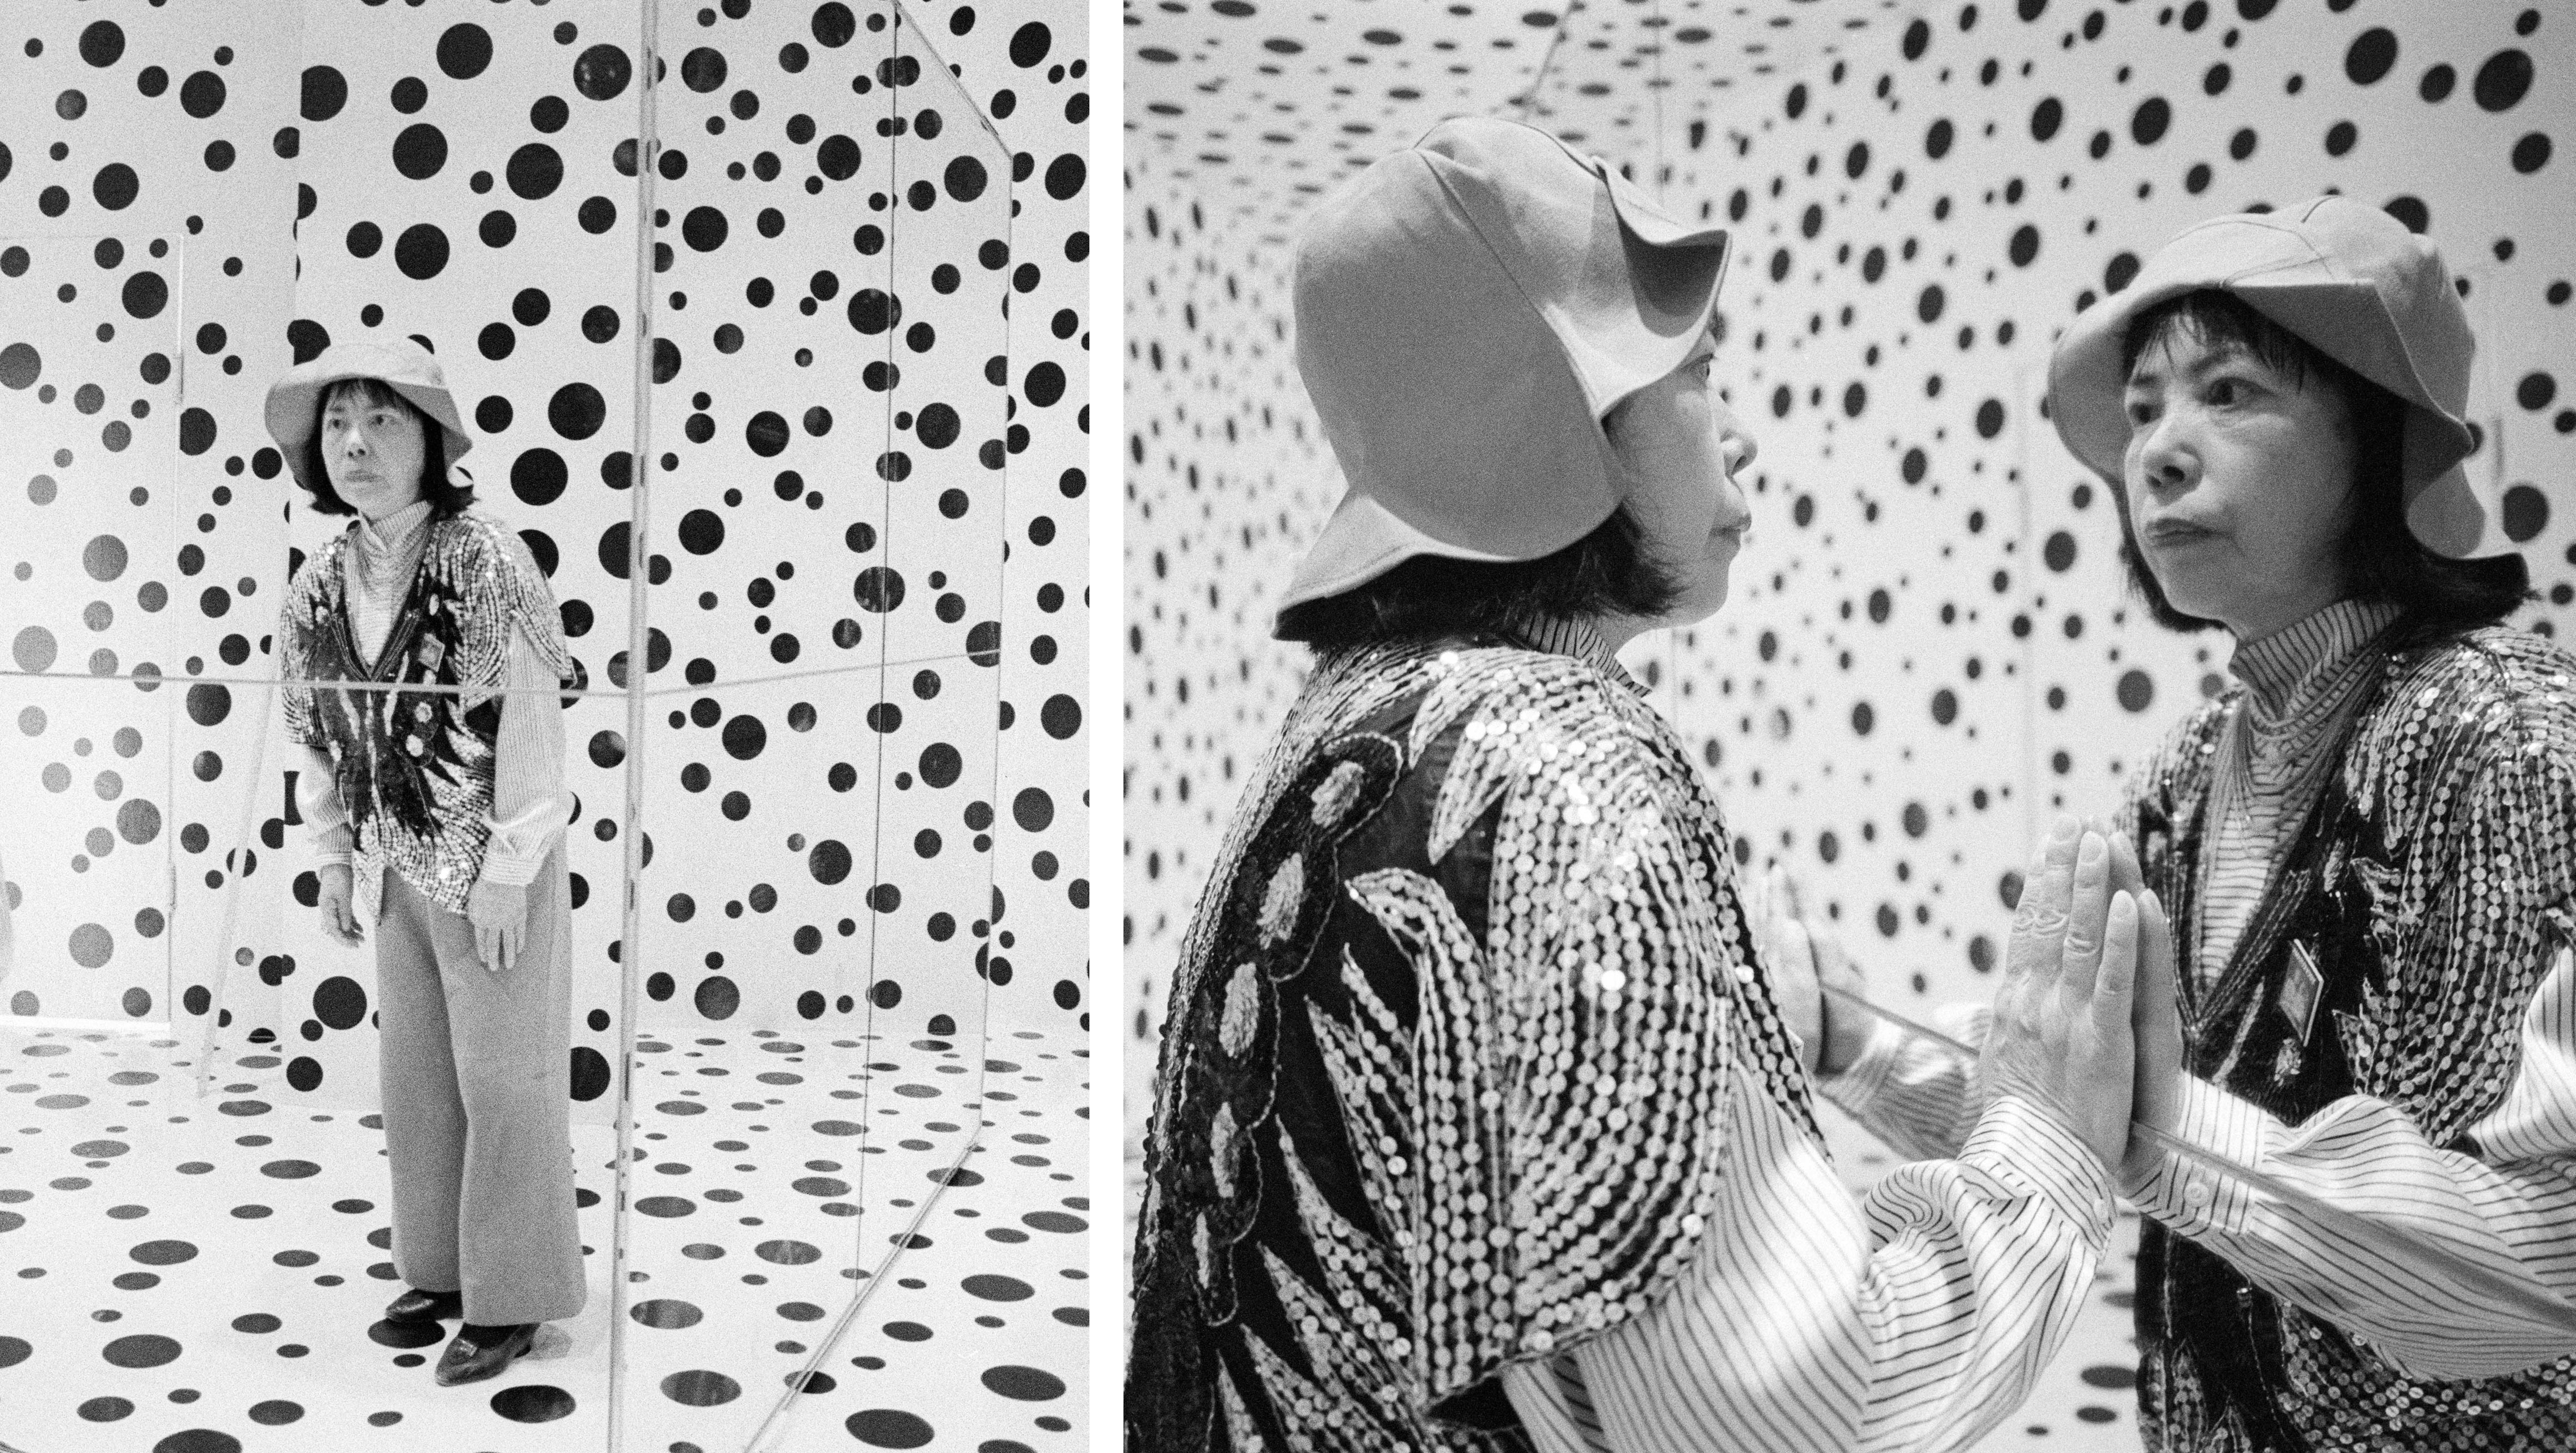 Kusama photographed by Majoli during her installation at the Venice Biennale in 1993.